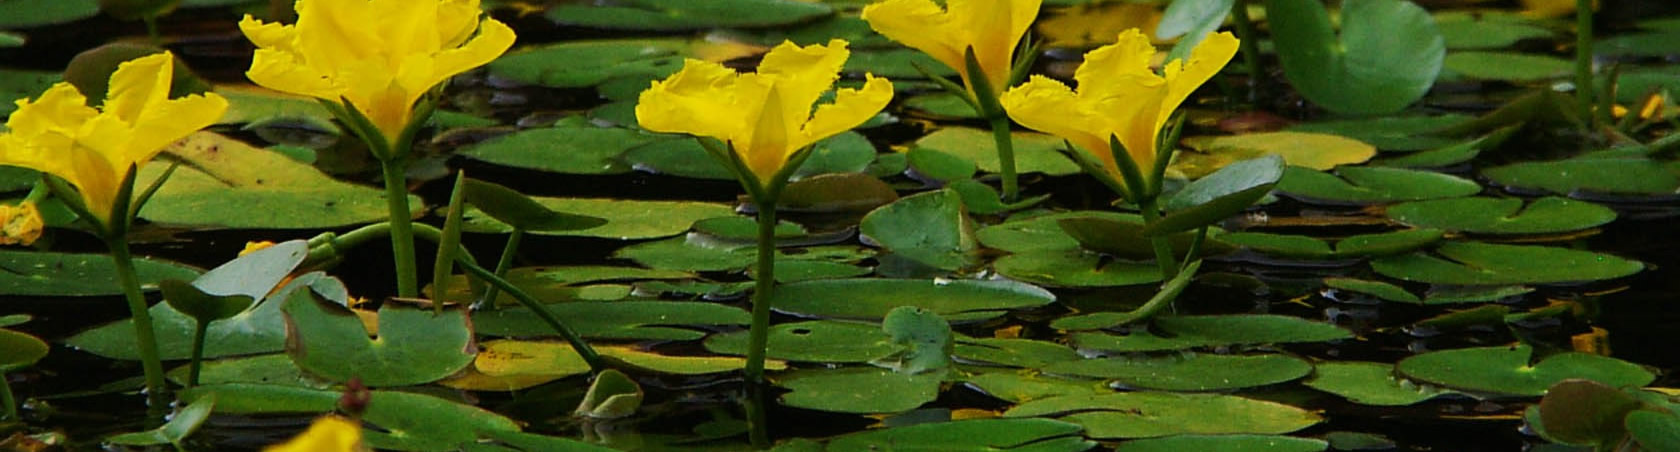 Water plants for ponds sale cheap aquatic pond plants for Cheap pond plants